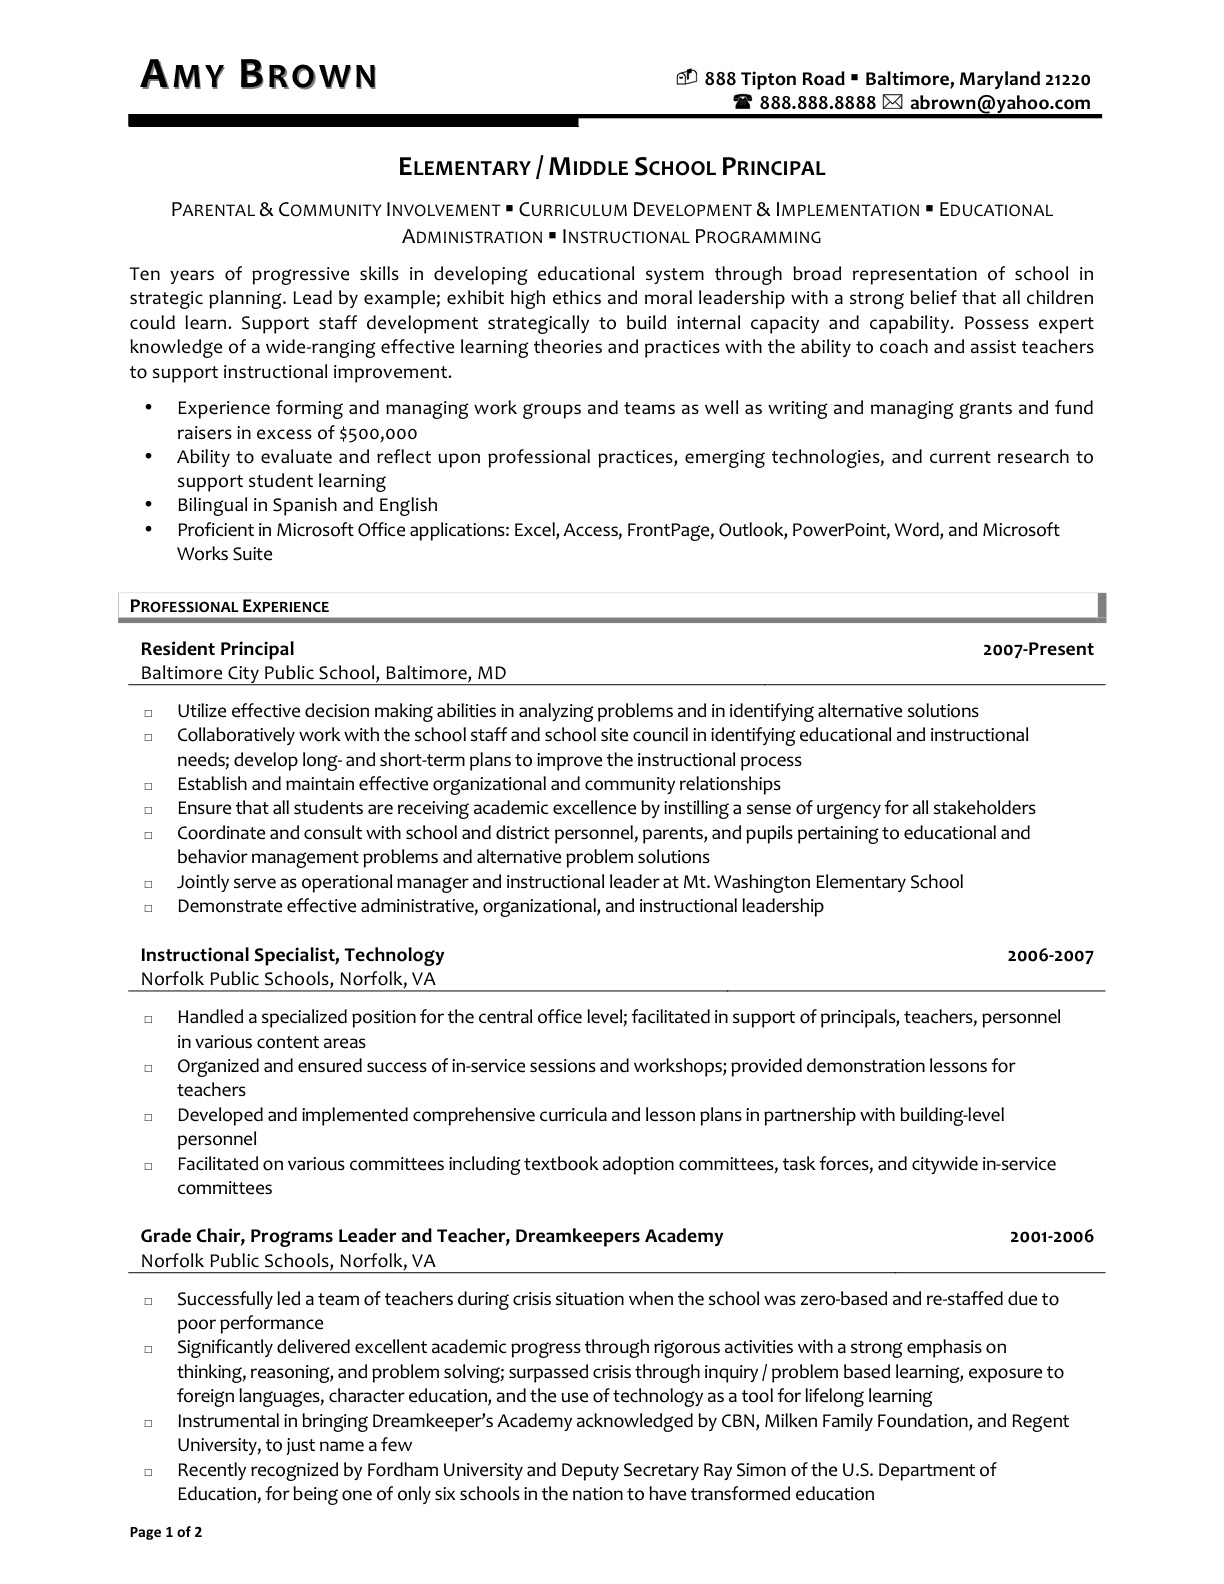 Resume Middle School Resume sample middle school teacher resume for bank job sharepoint administrator salary 1606687323 elementary 20school 20principal 1 middl